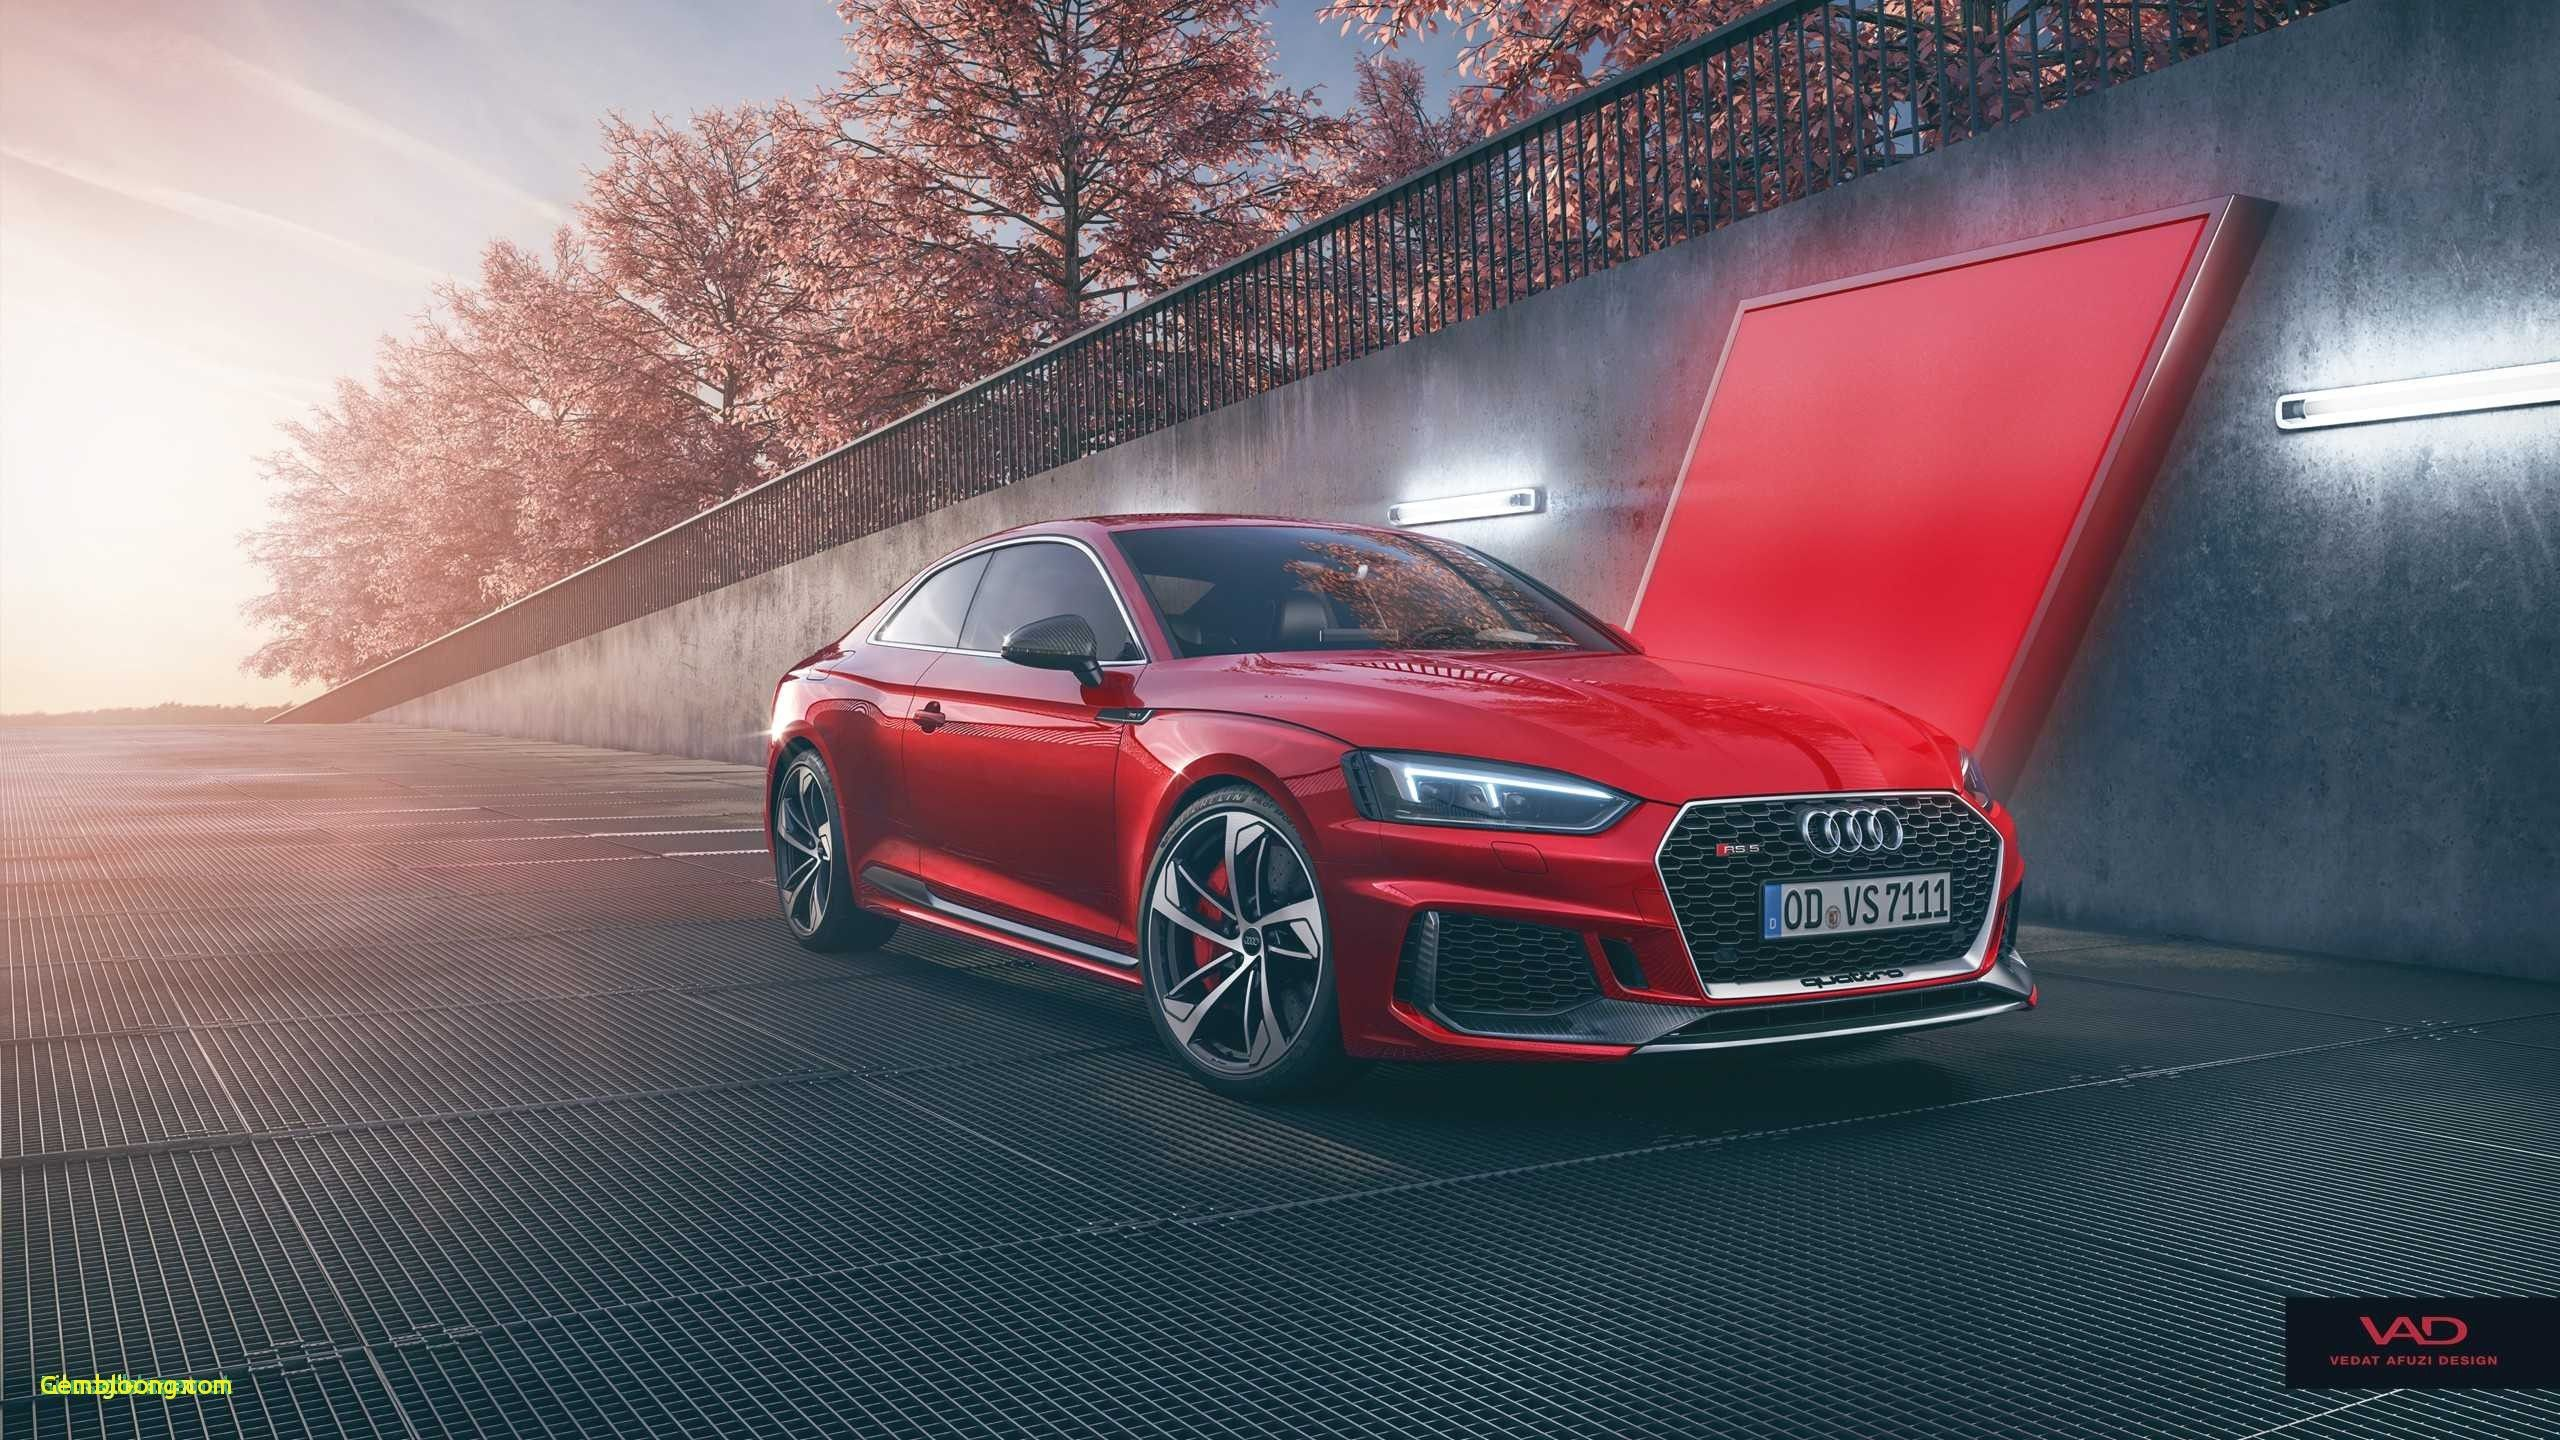 Awesome 2018 Audi Rs5 Wallpaper Toyota Land Cruiser Supercars Audi A4